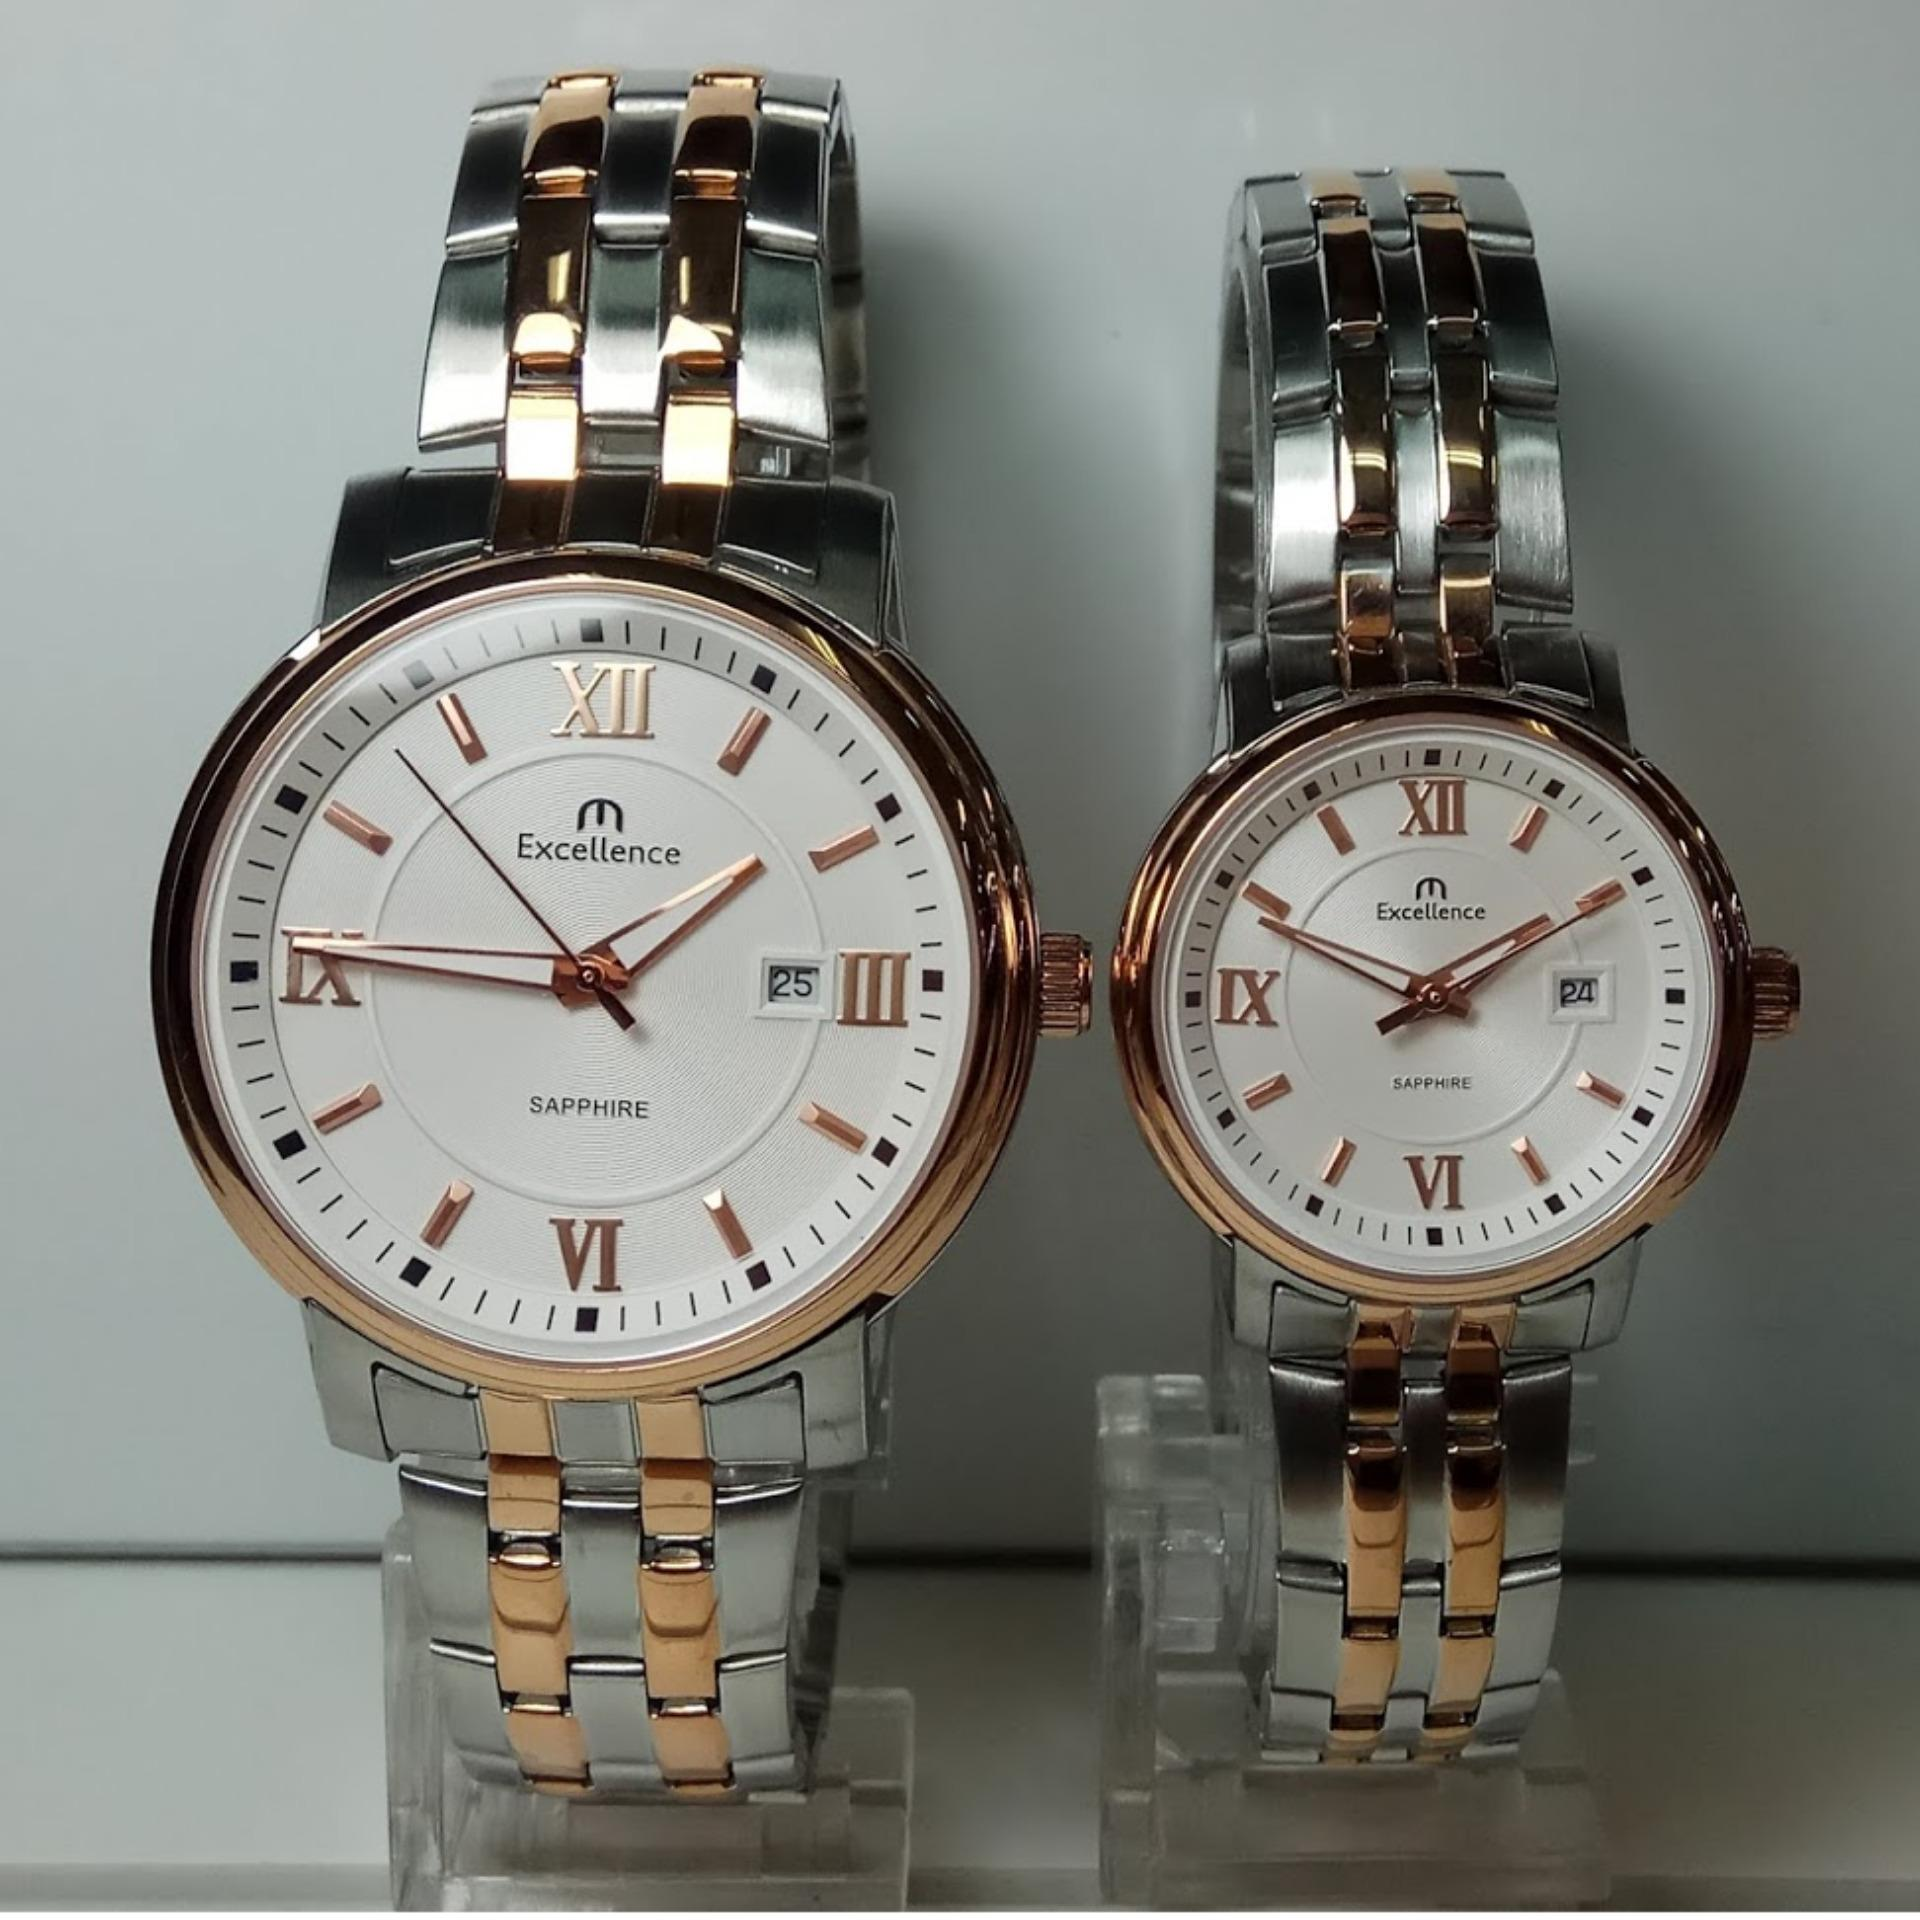 Casio Couple Watch Jam Tangan Silver Strap Stainless Steel 1302d 1a2 Excellence Ex 8122md Ld Sapphire Rosegold